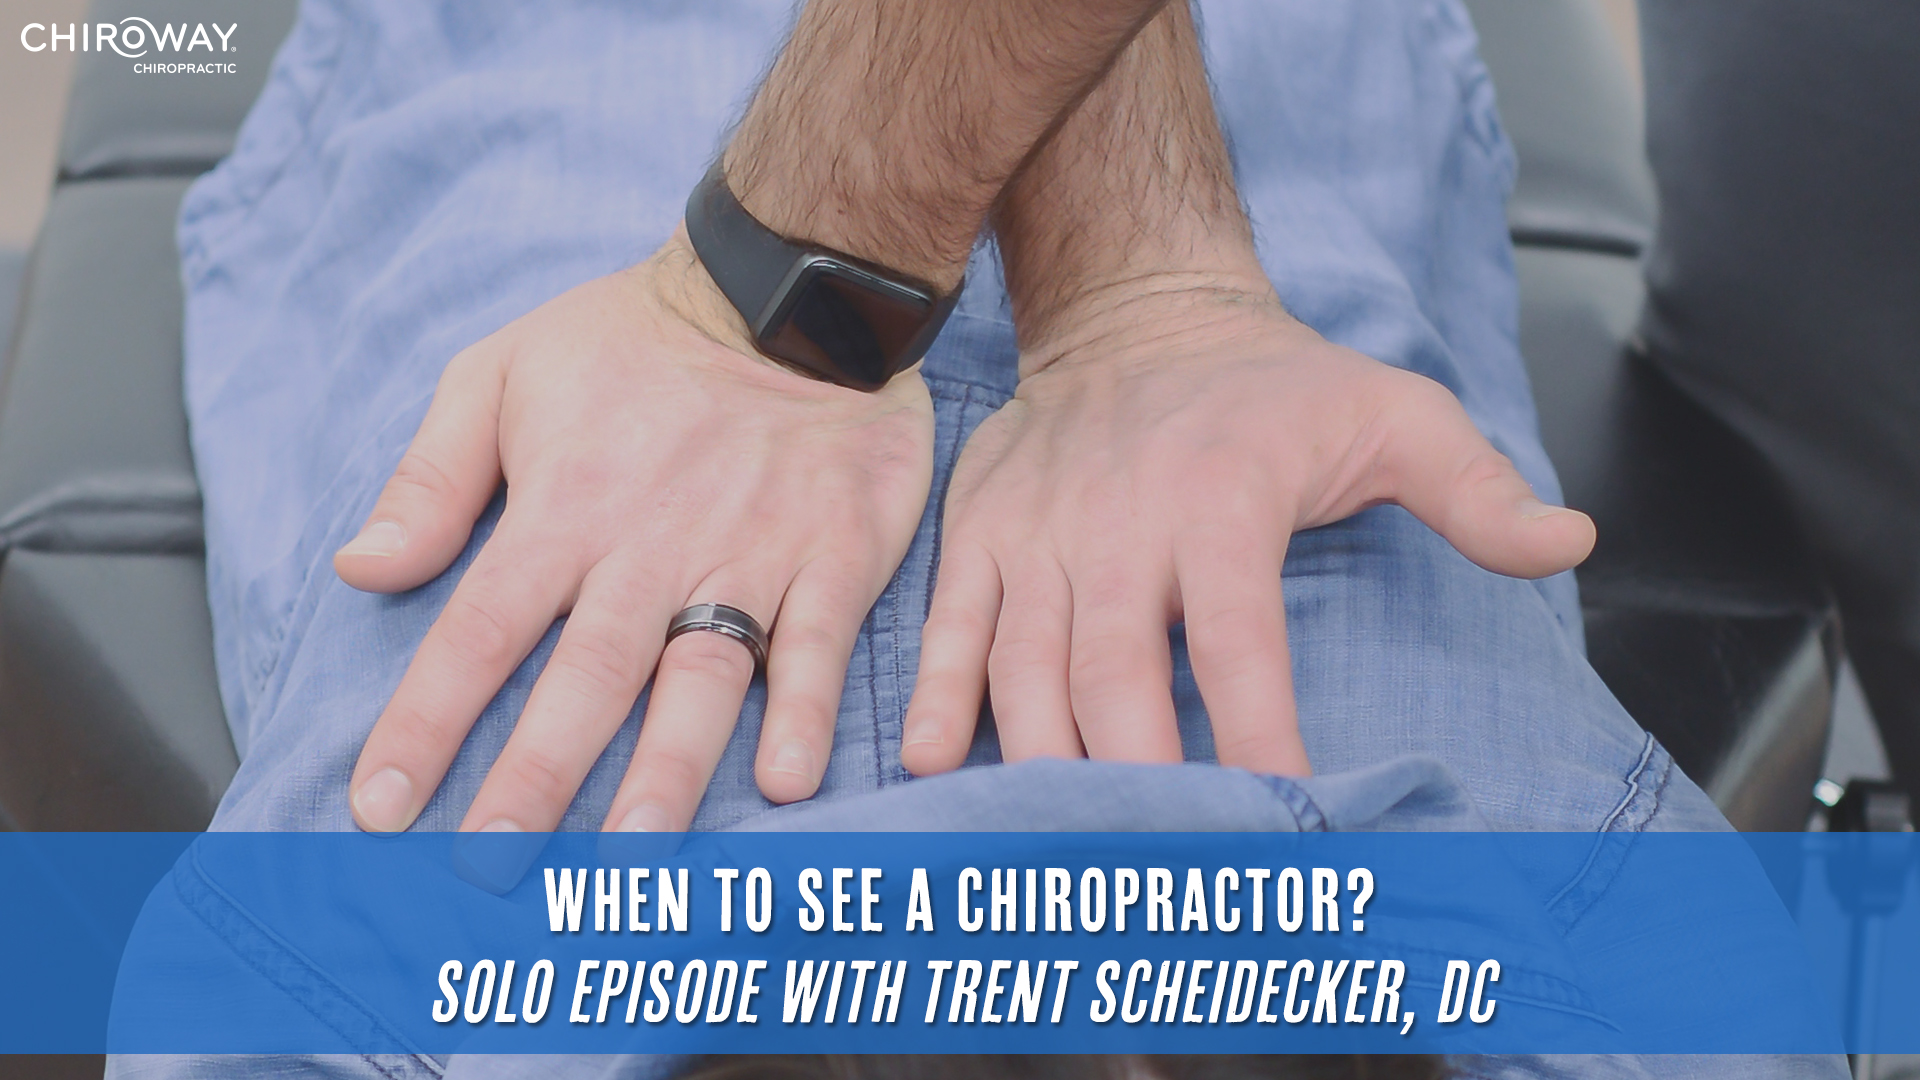 When to see a chiropractor?